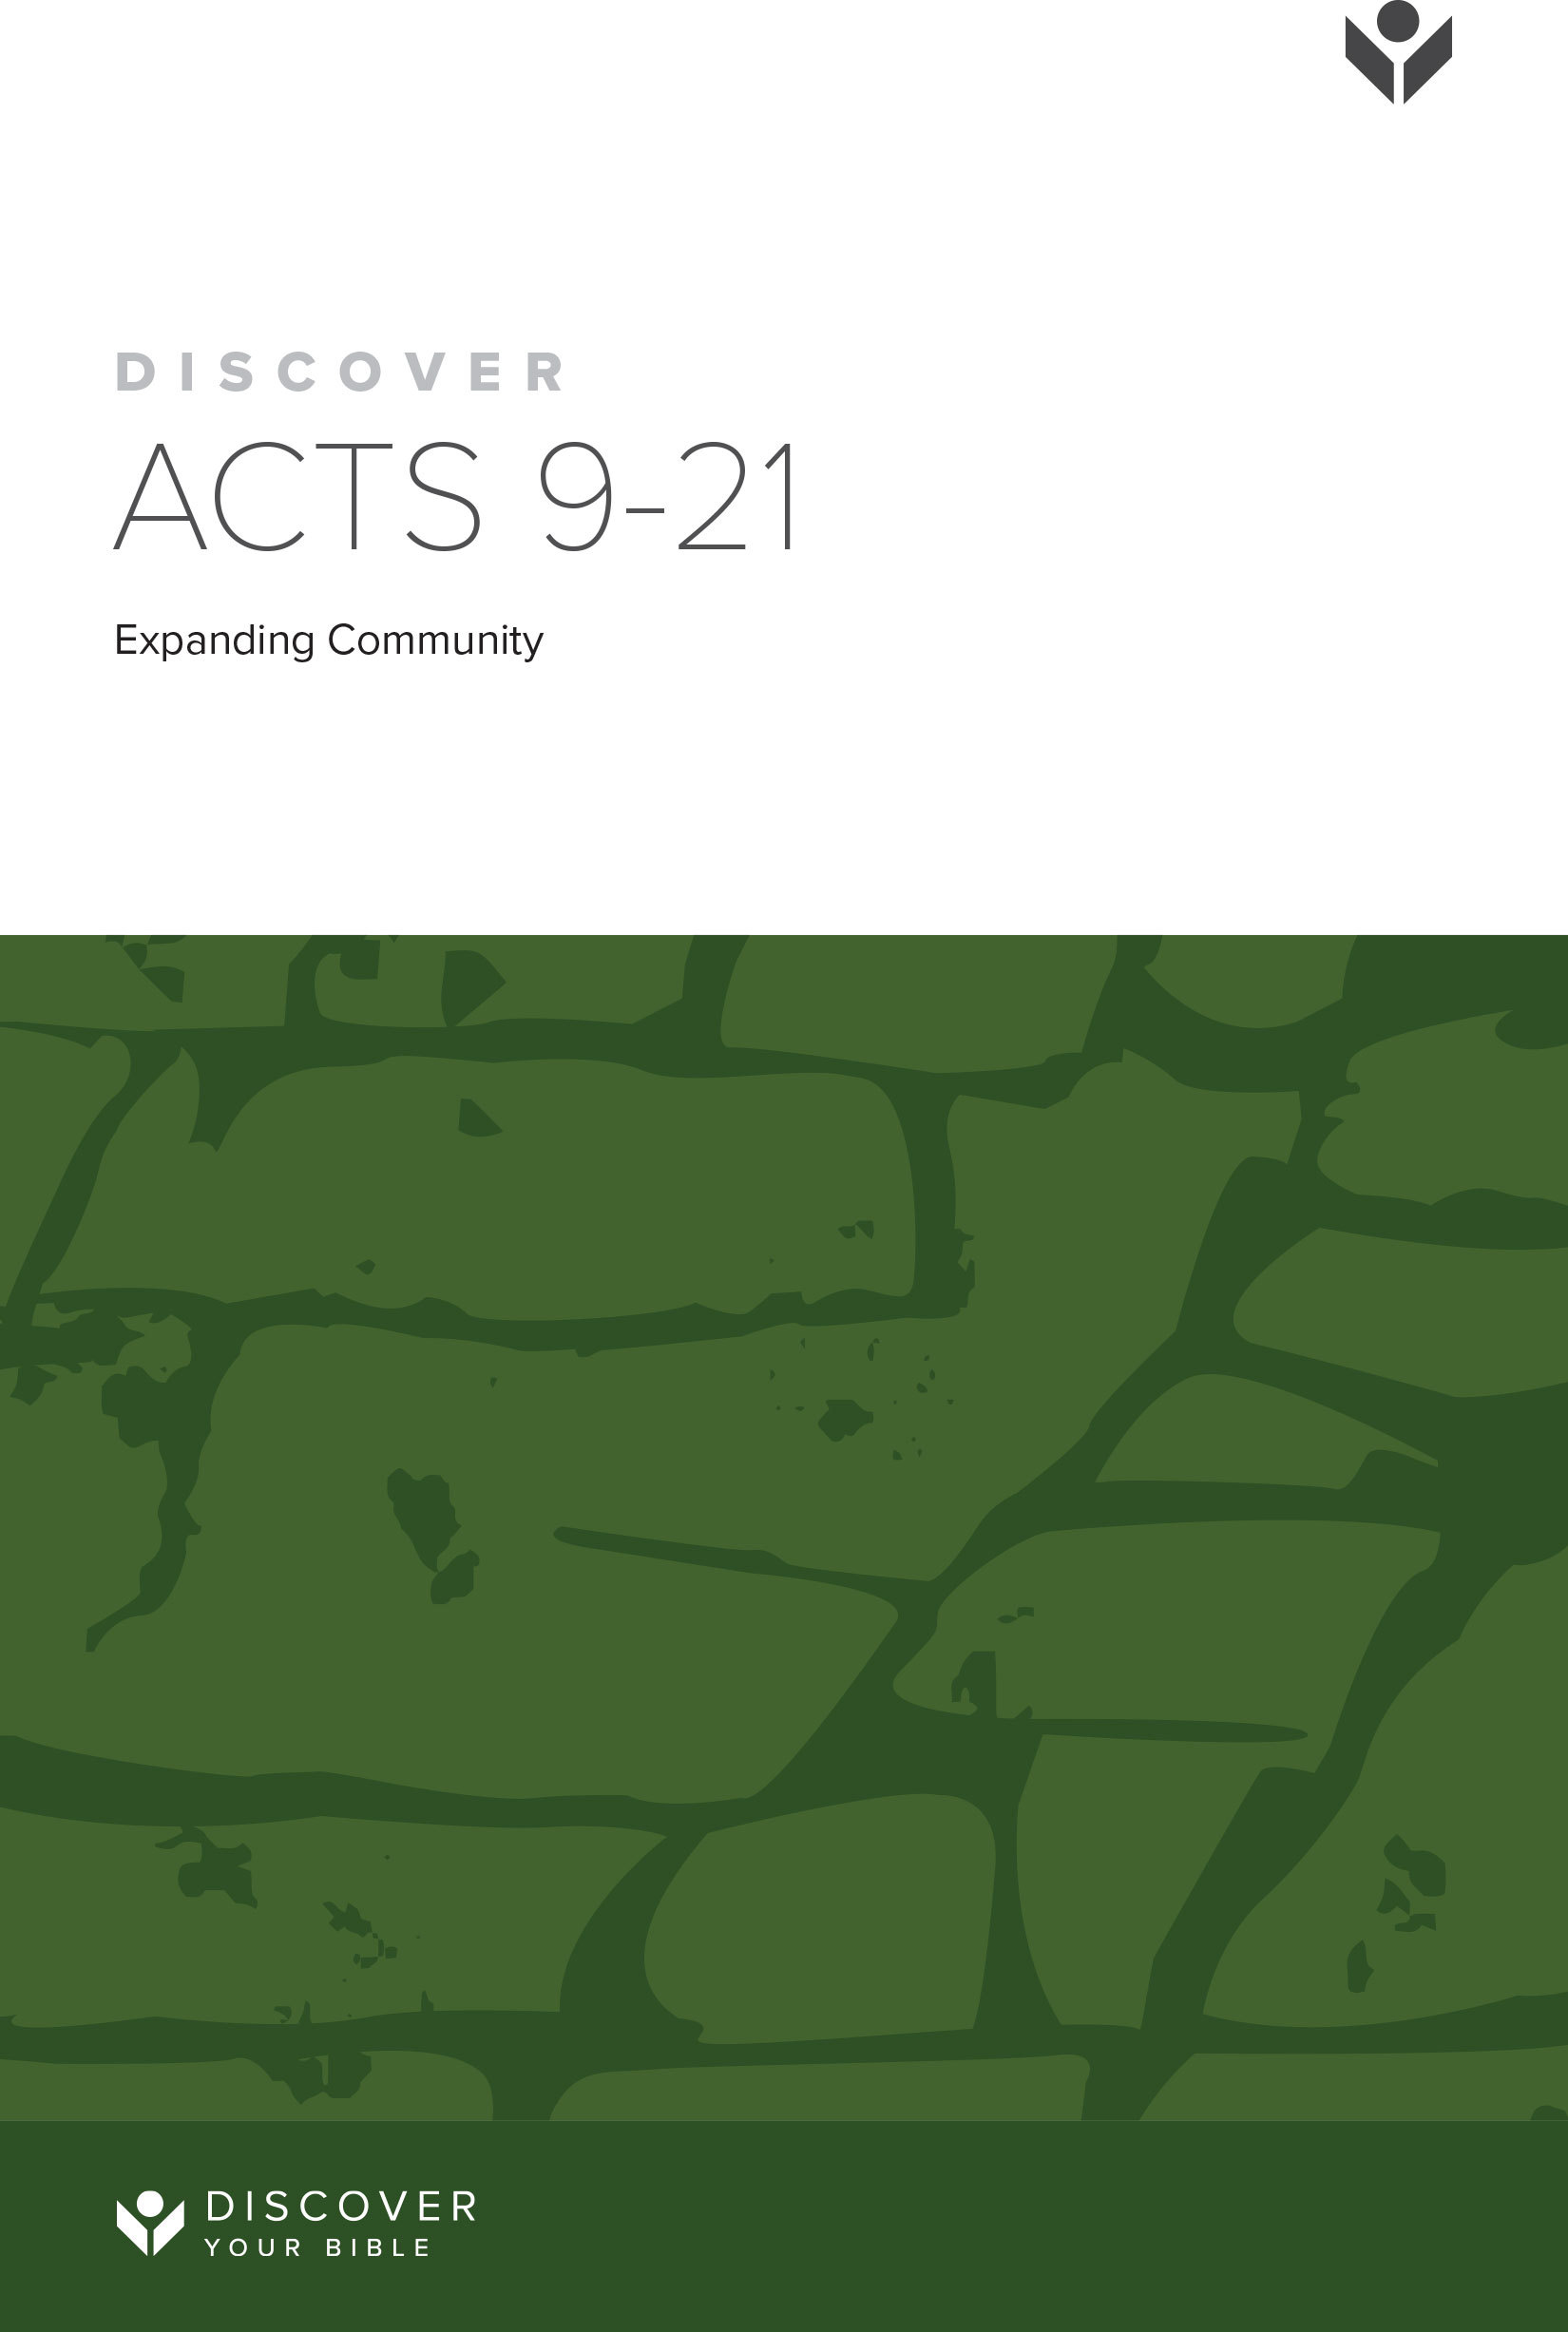 Discover Acts 9-21 Study Guide cover image